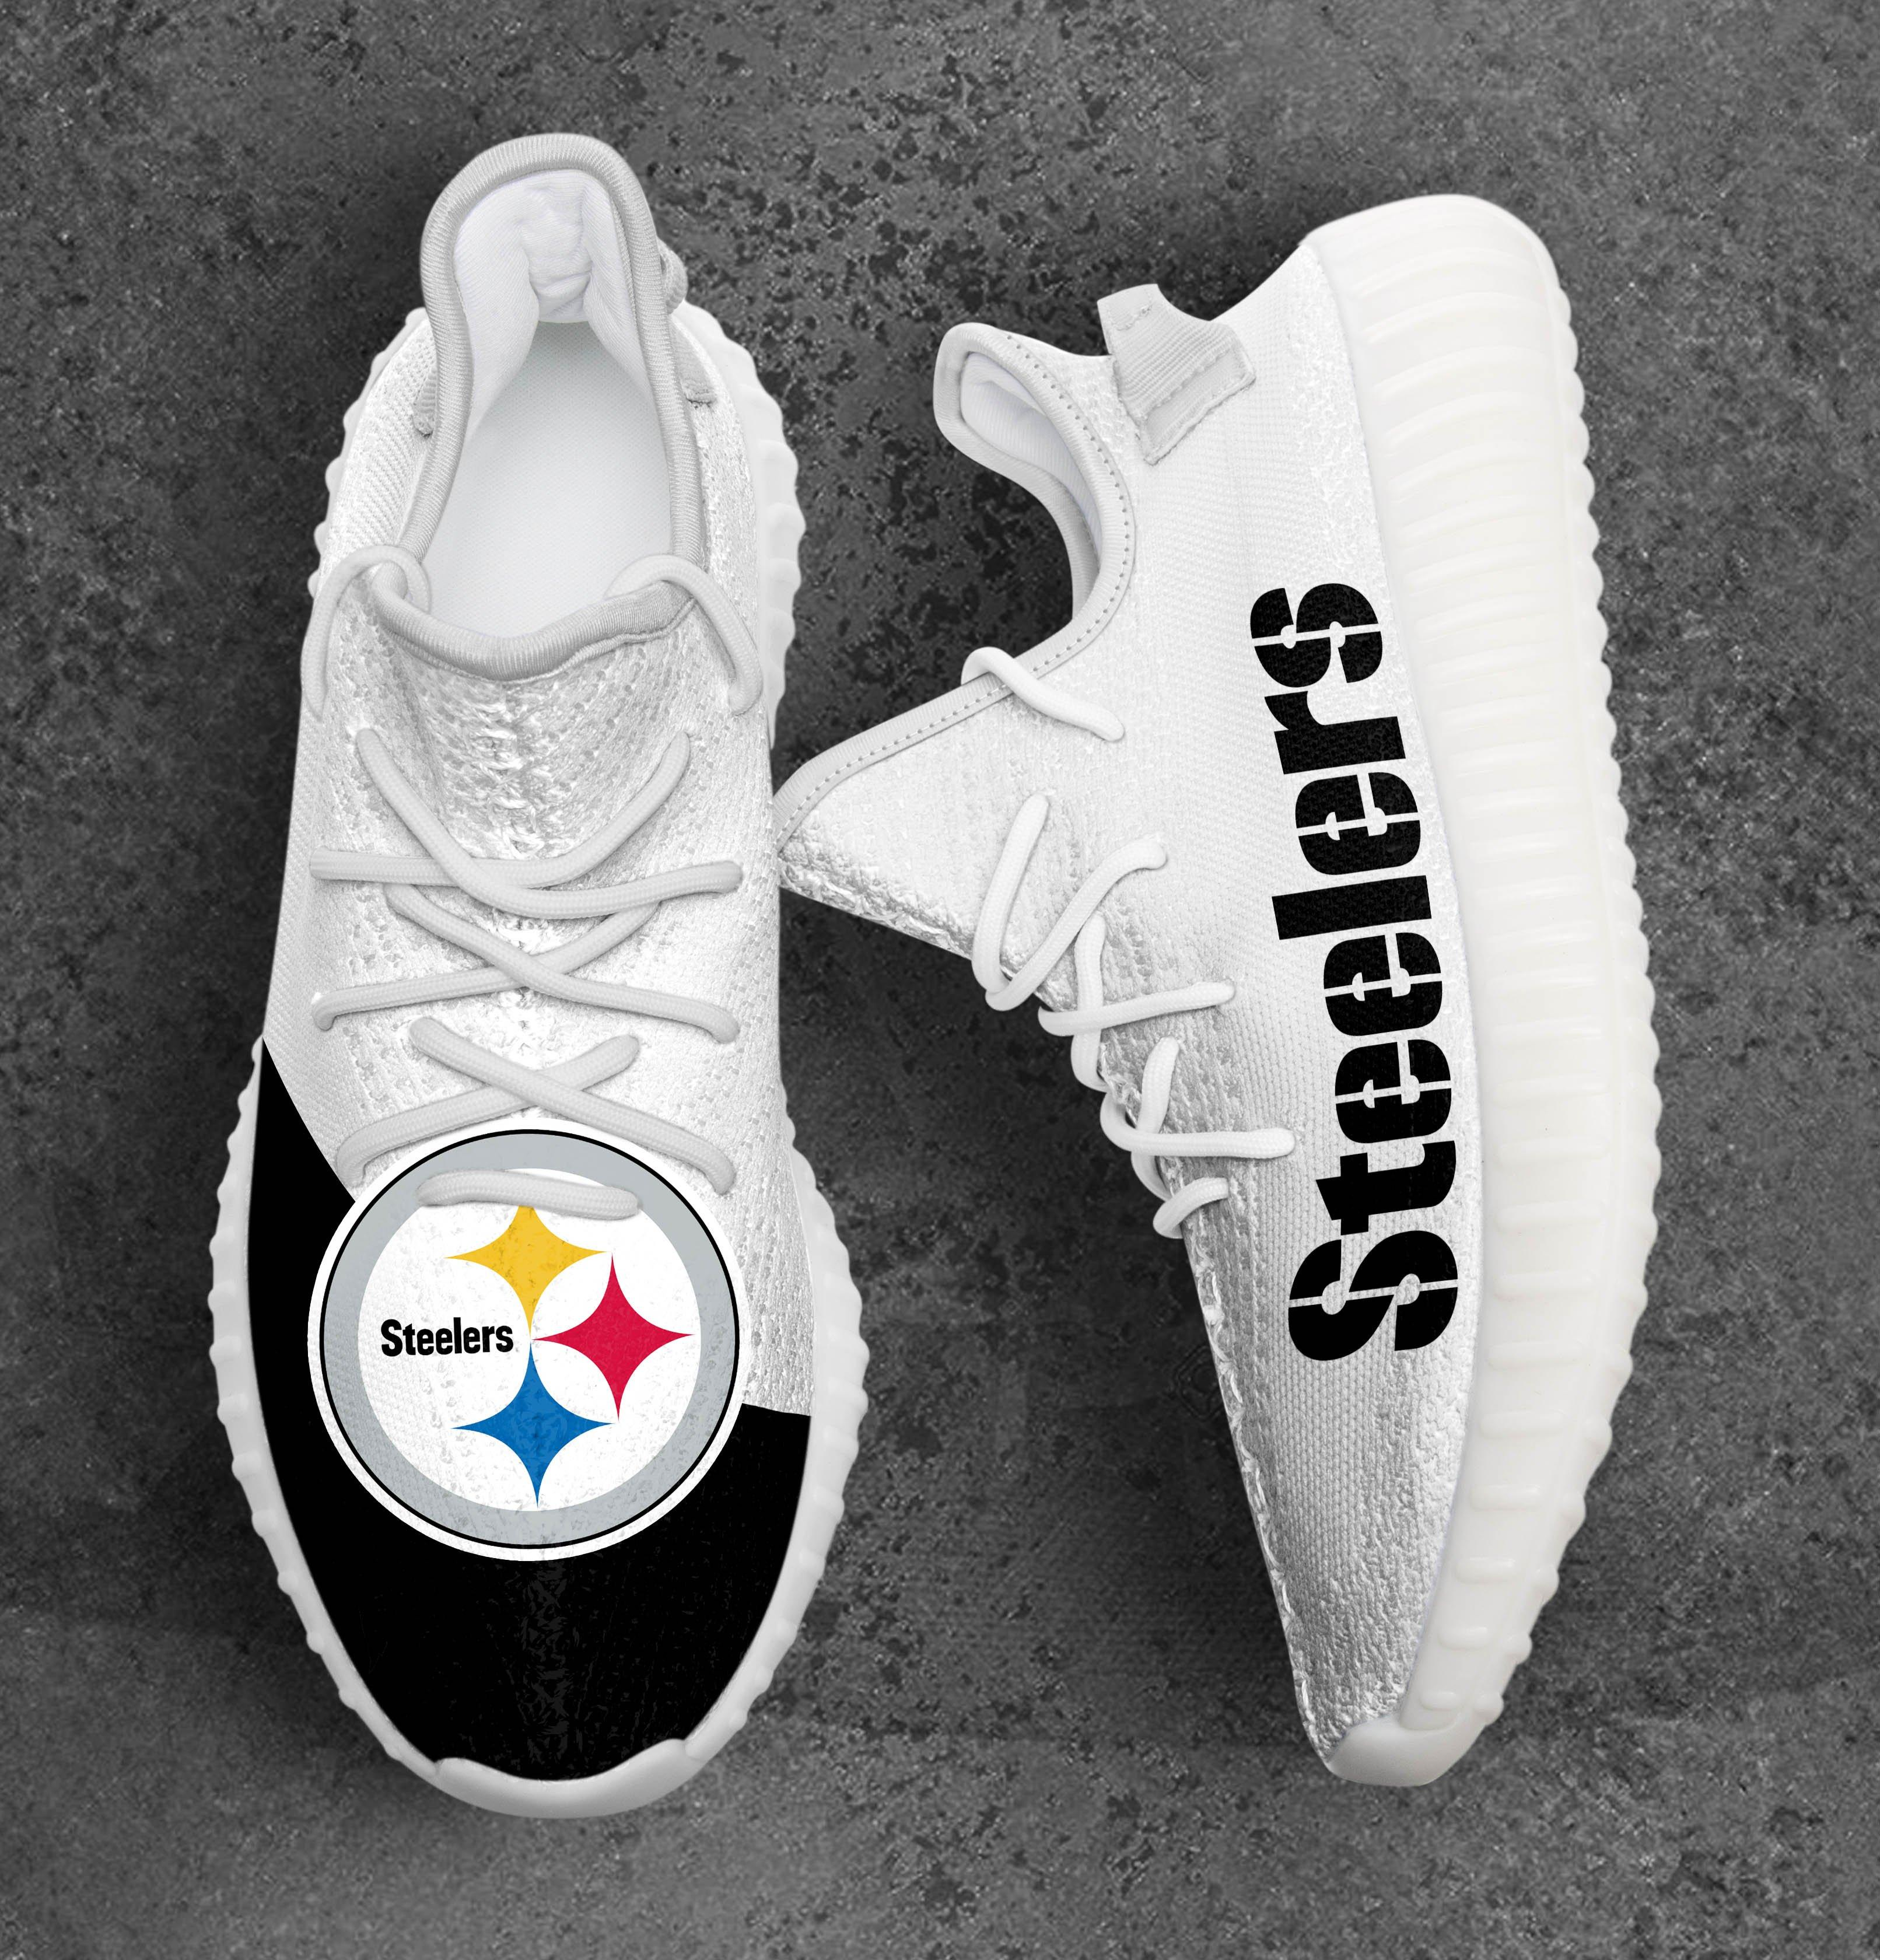 Pittsburgh Steelers NFL Sport Teams Adidas Yeezy Boost 350 V2 Top Branding Trends